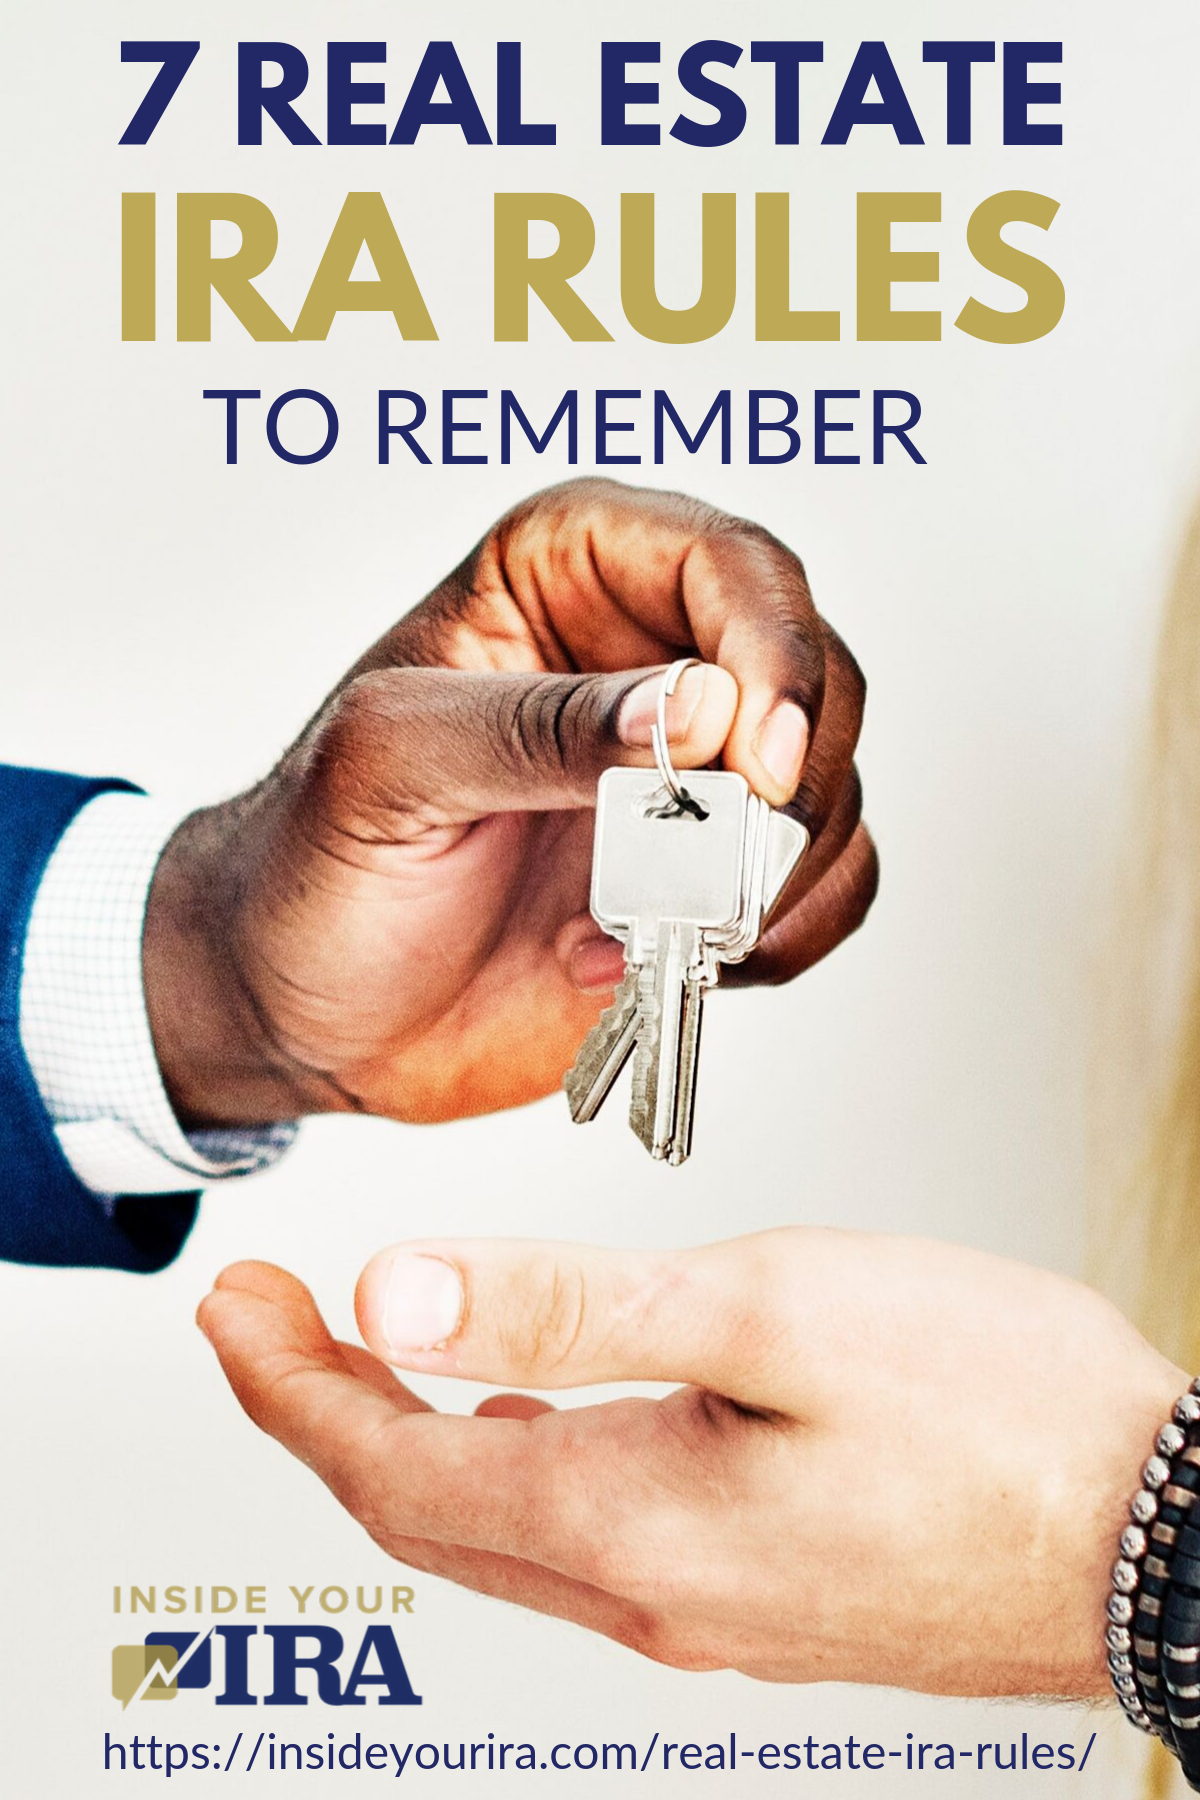 7 Real Estate IRA Rules To Remember | Inside Your IRA https://www.insideyourira.com/real-estate-ira-rules/